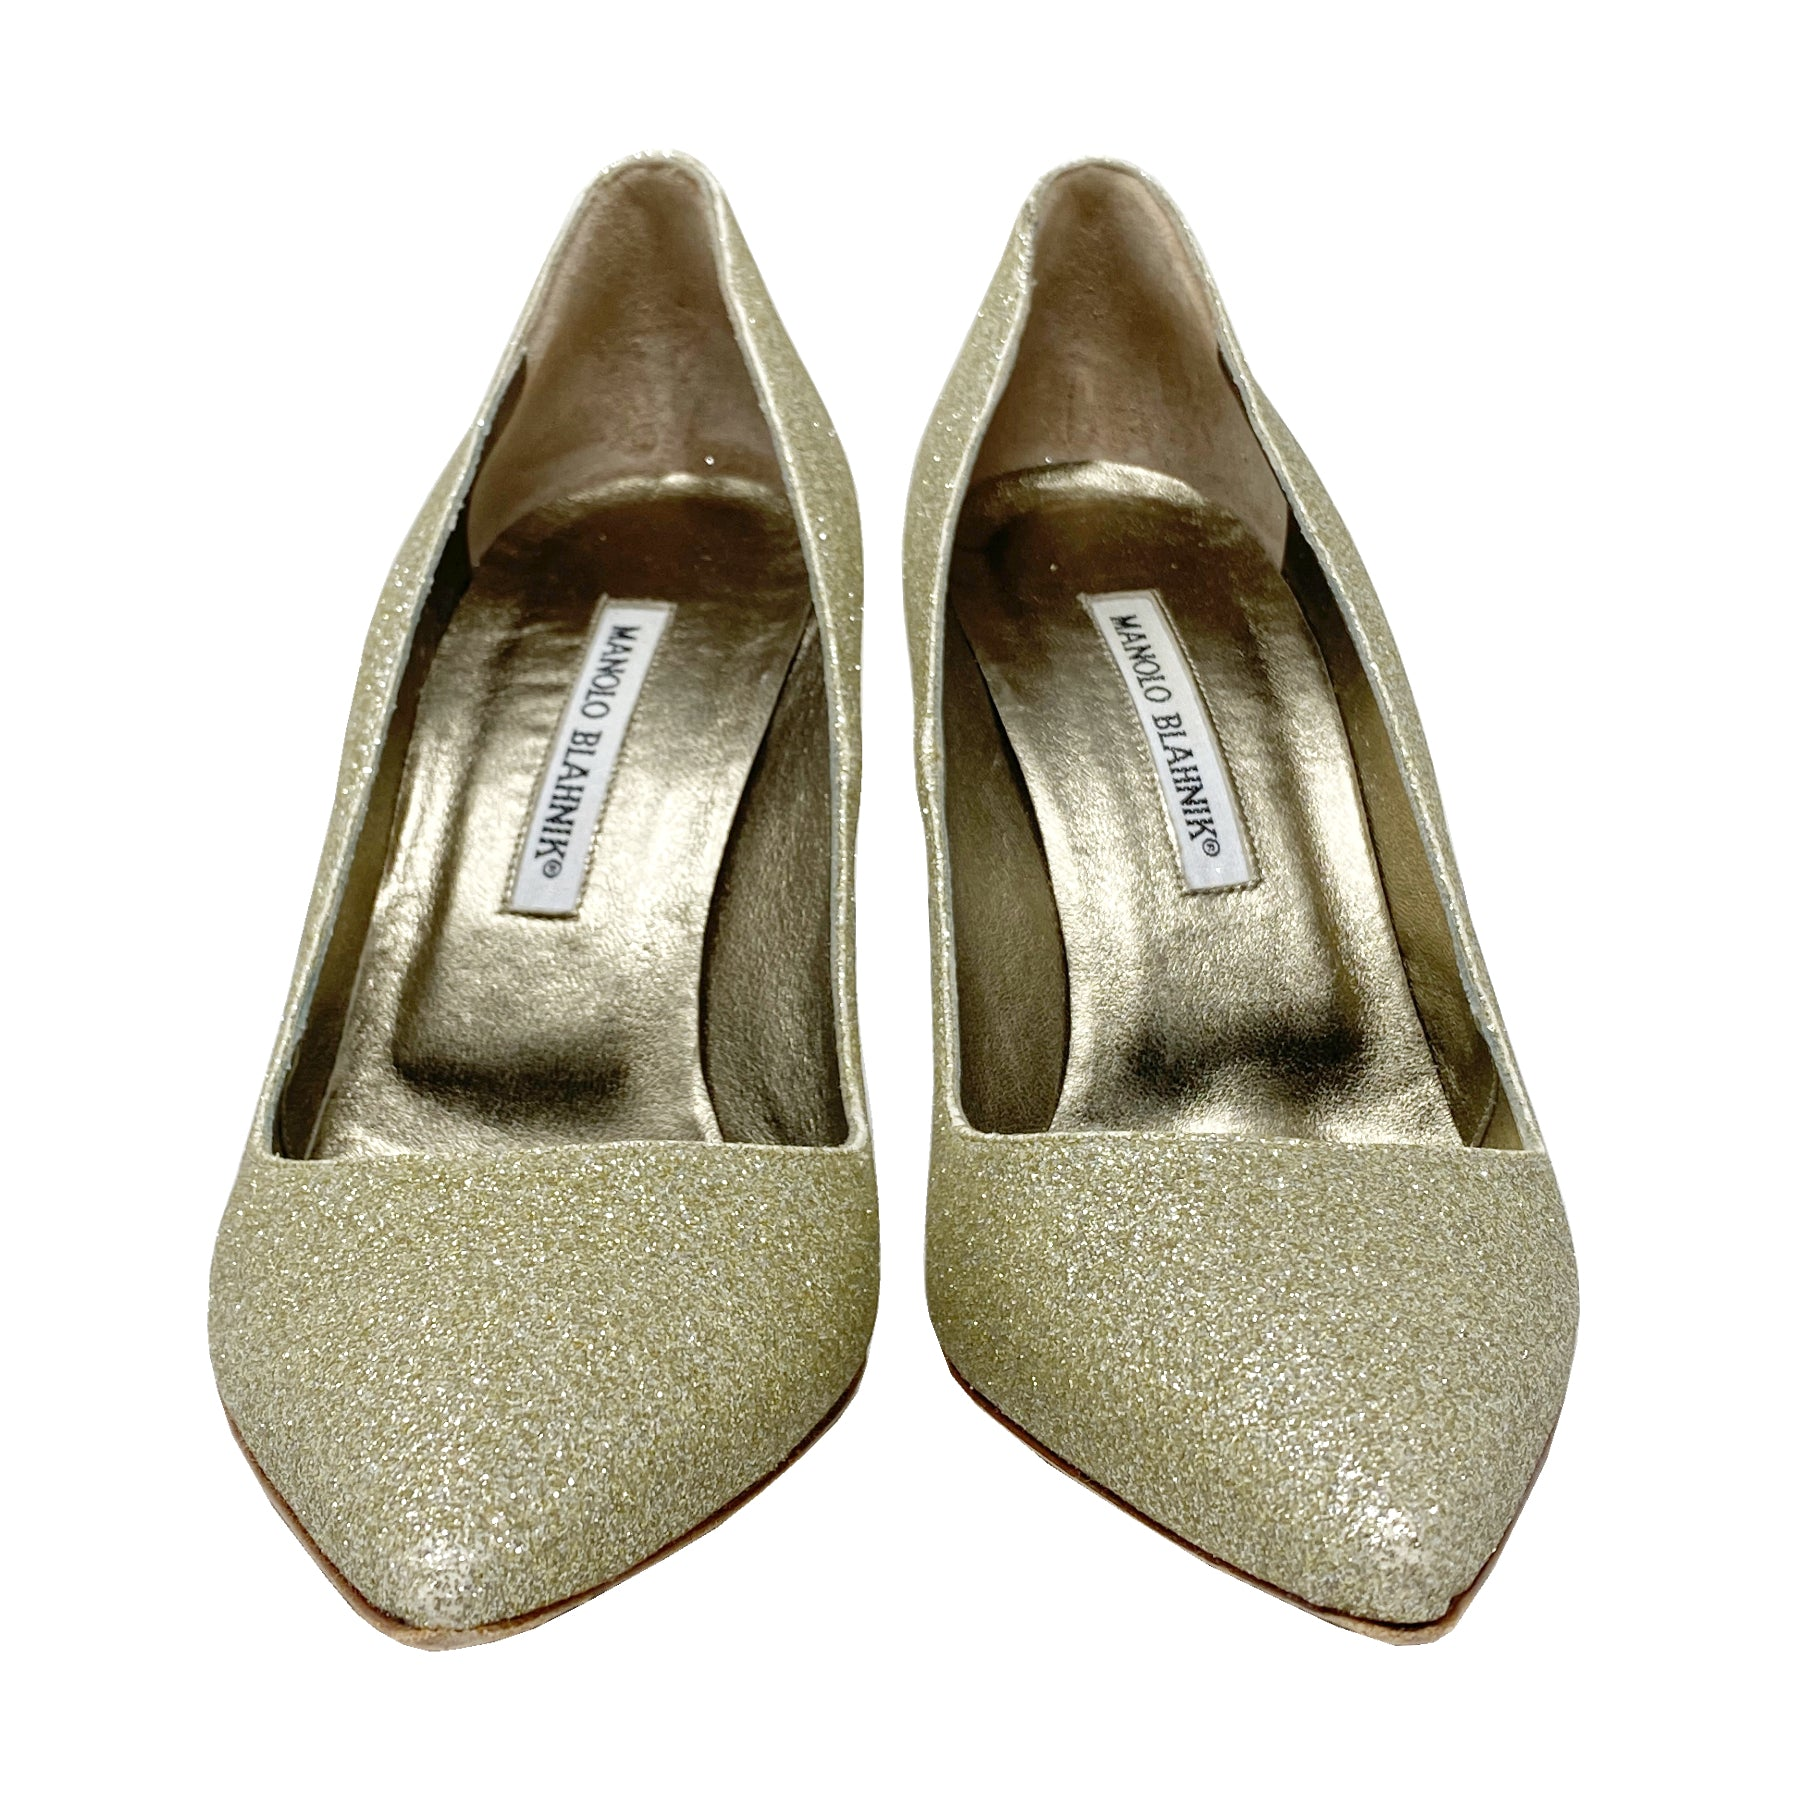 Manolo Blahnik BB 105 Pointed Toe Pumps Size EU 39.5